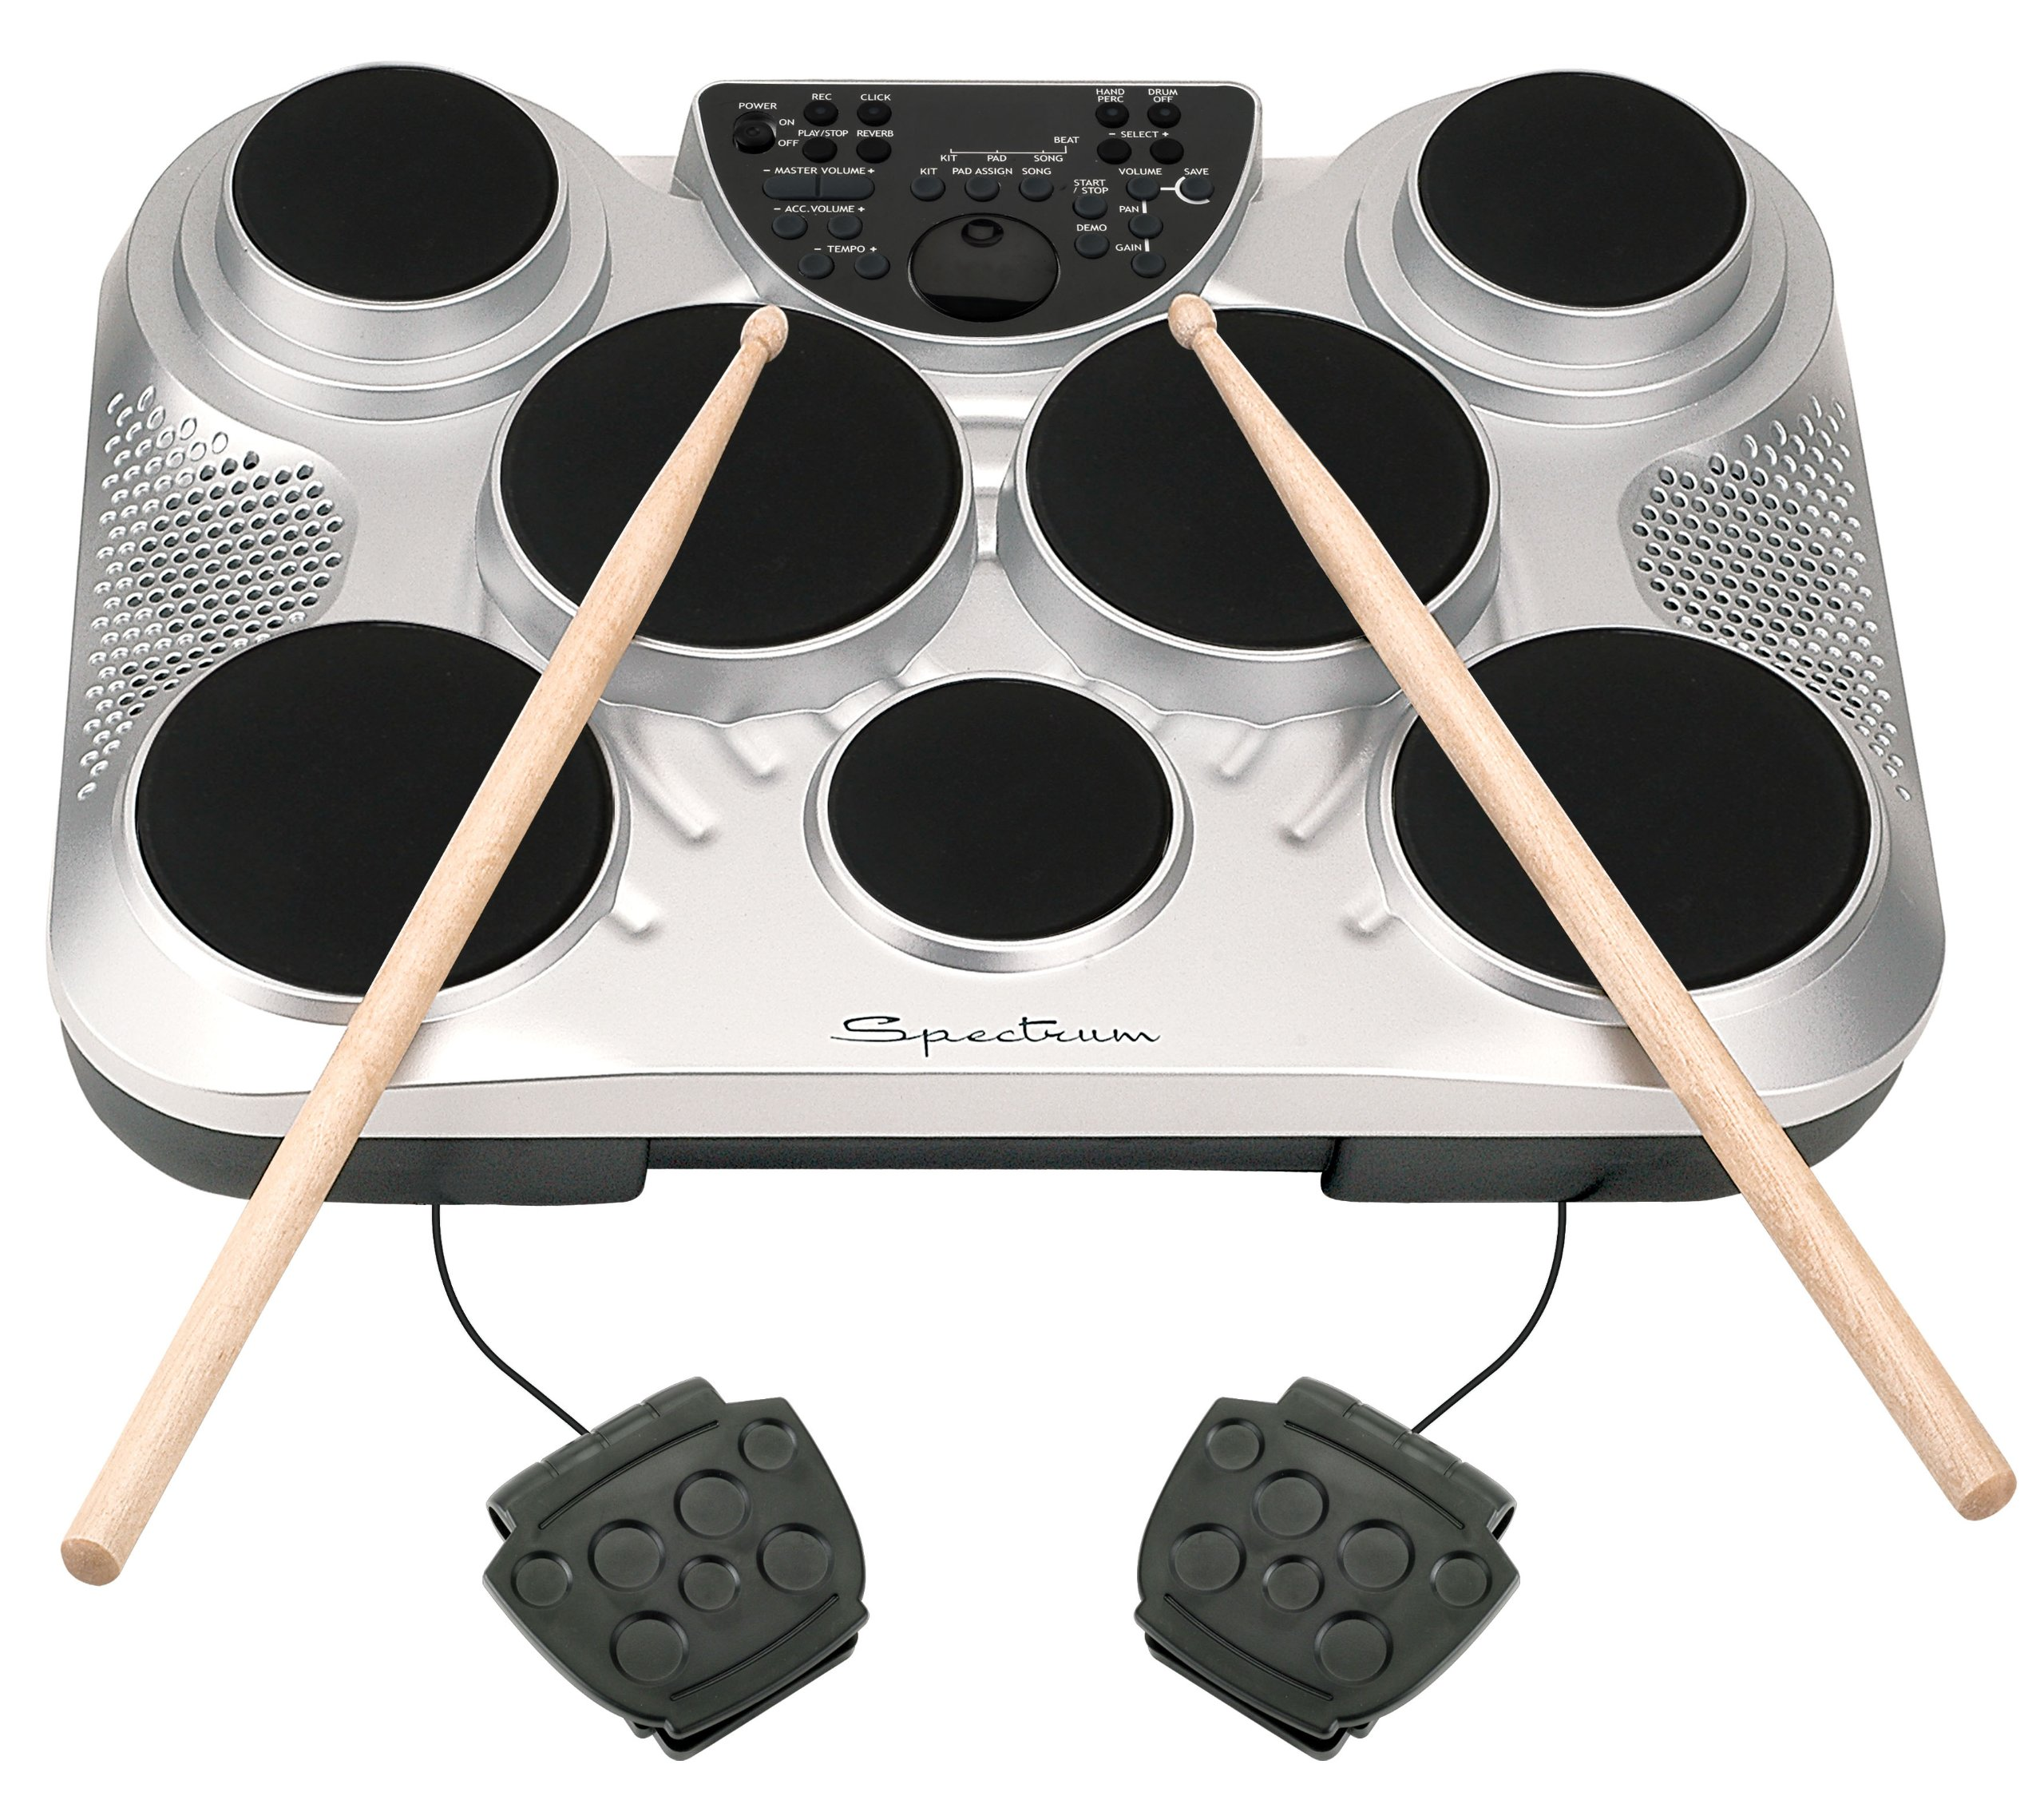 Spectrum AIL 602 7-Pad Digital Drum Set with Adjustable Stand, Pedals, Sticks and AC Adapter by Spectrum